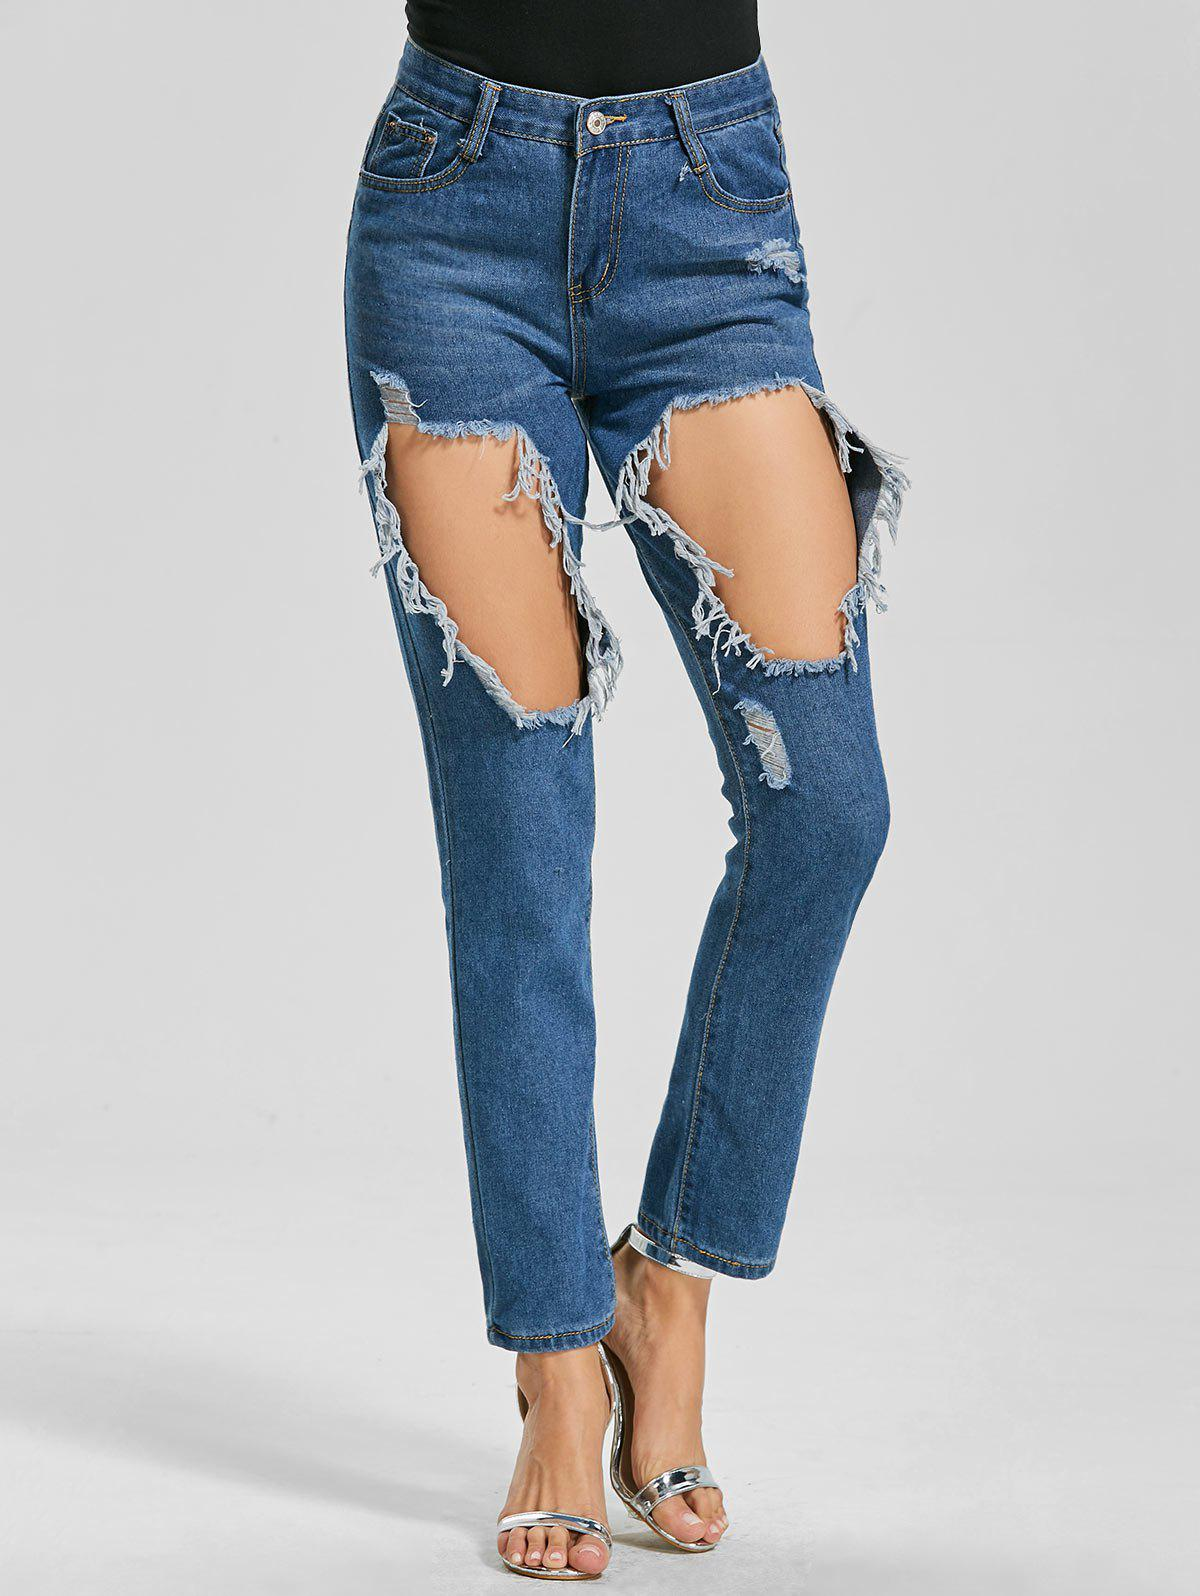 Cut Out Ankle Length Ripped Jeans - BLUE L